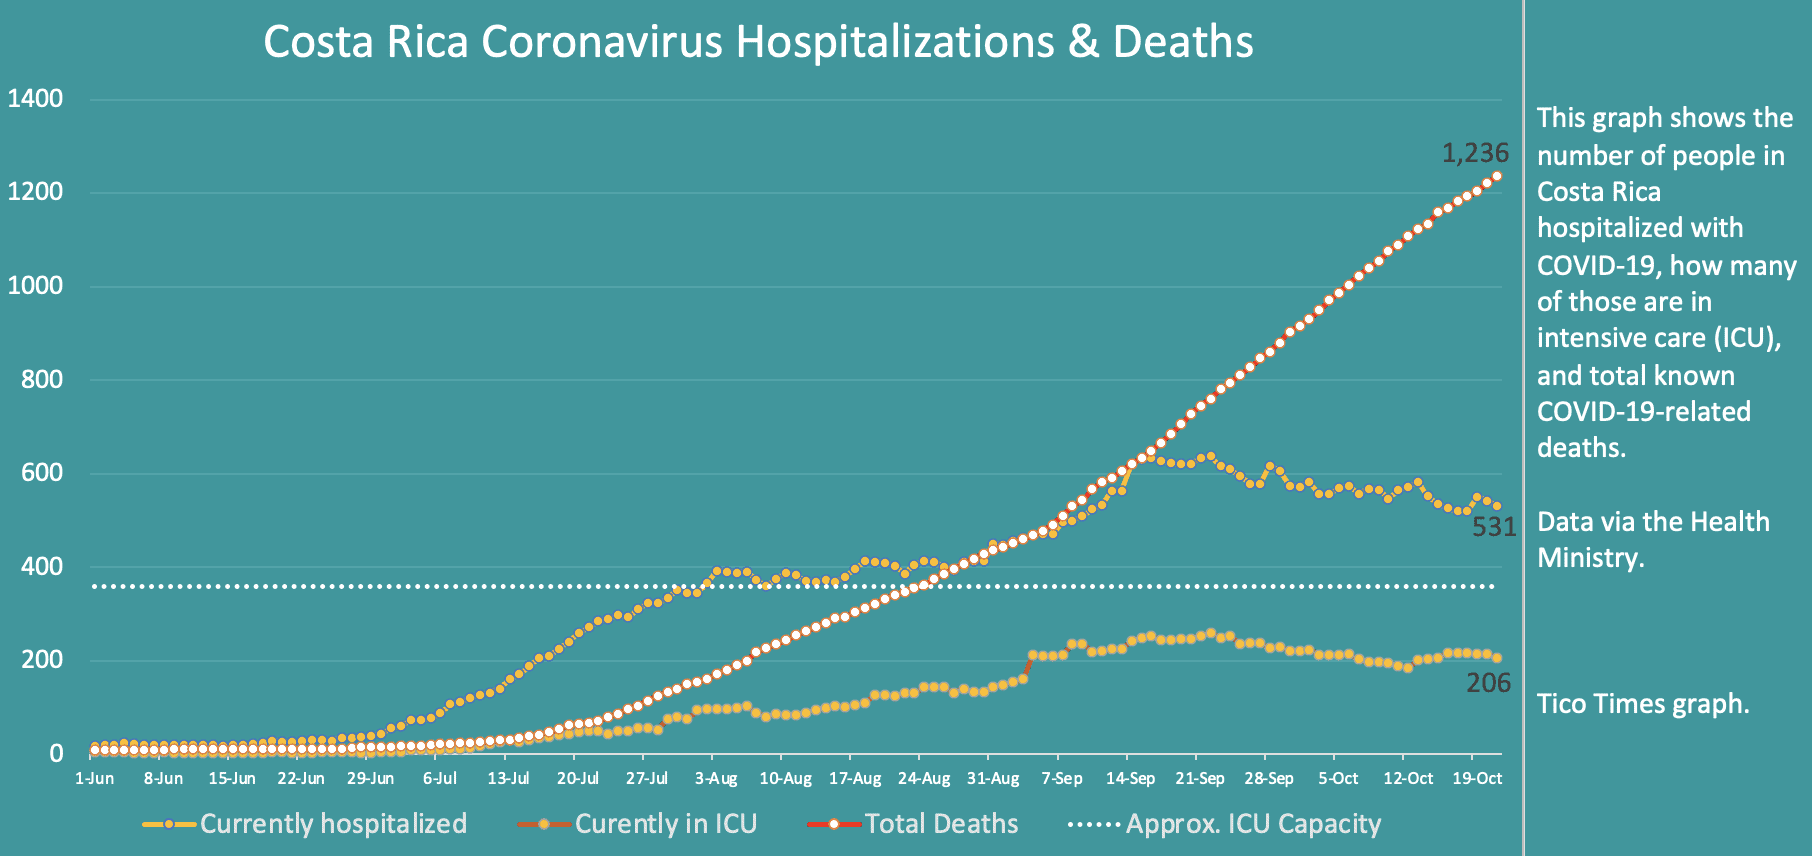 Costa Rica coronavirus hospitalizations and deaths on October 21, 2020